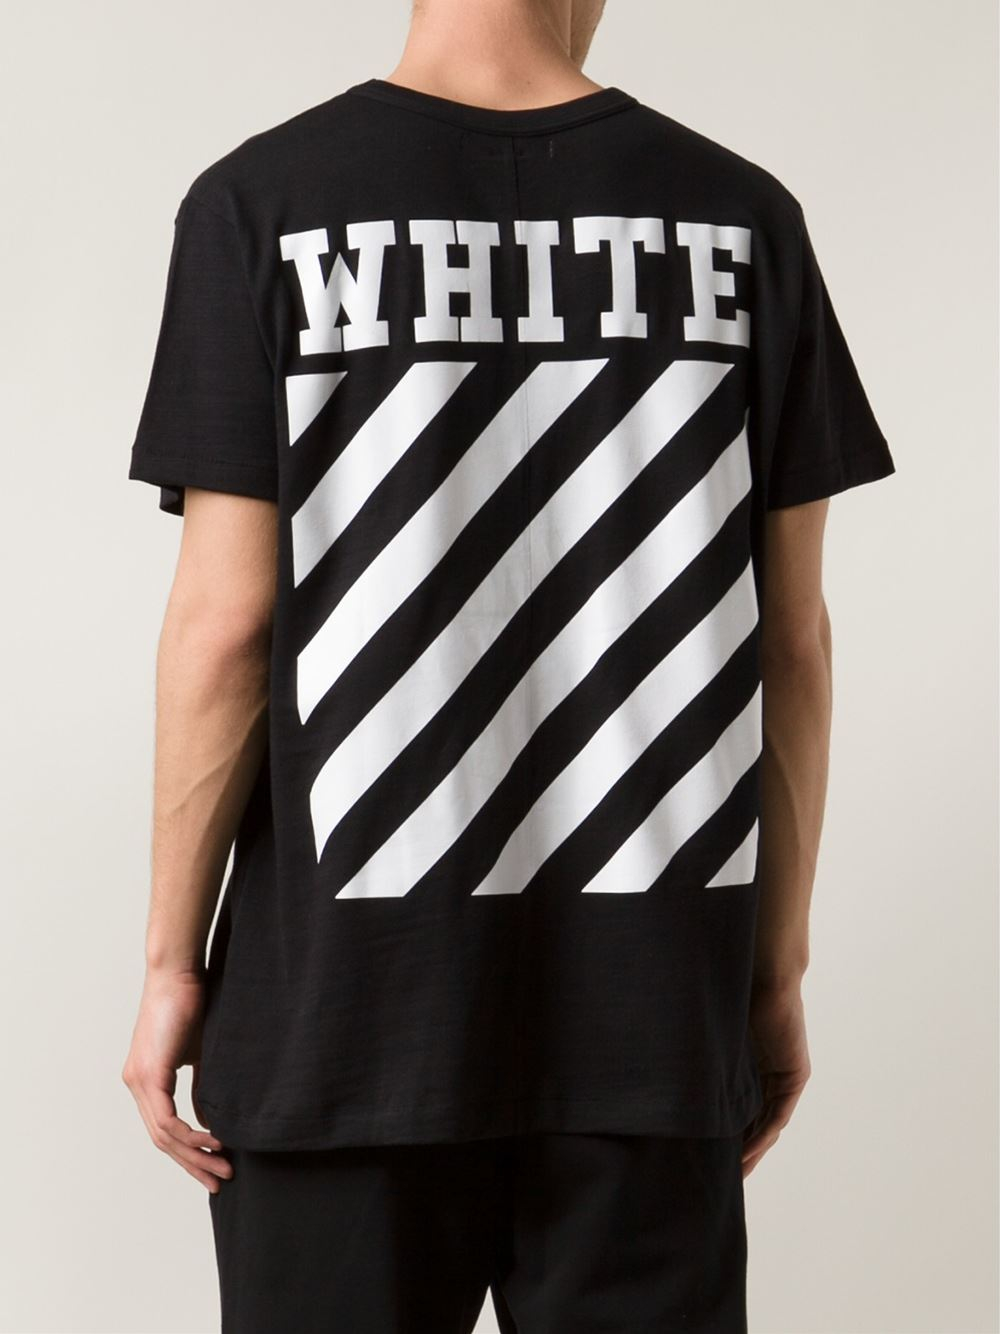 off white c o virgil abloh new caravaggio cotton t shirt in black for men lyst. Black Bedroom Furniture Sets. Home Design Ideas